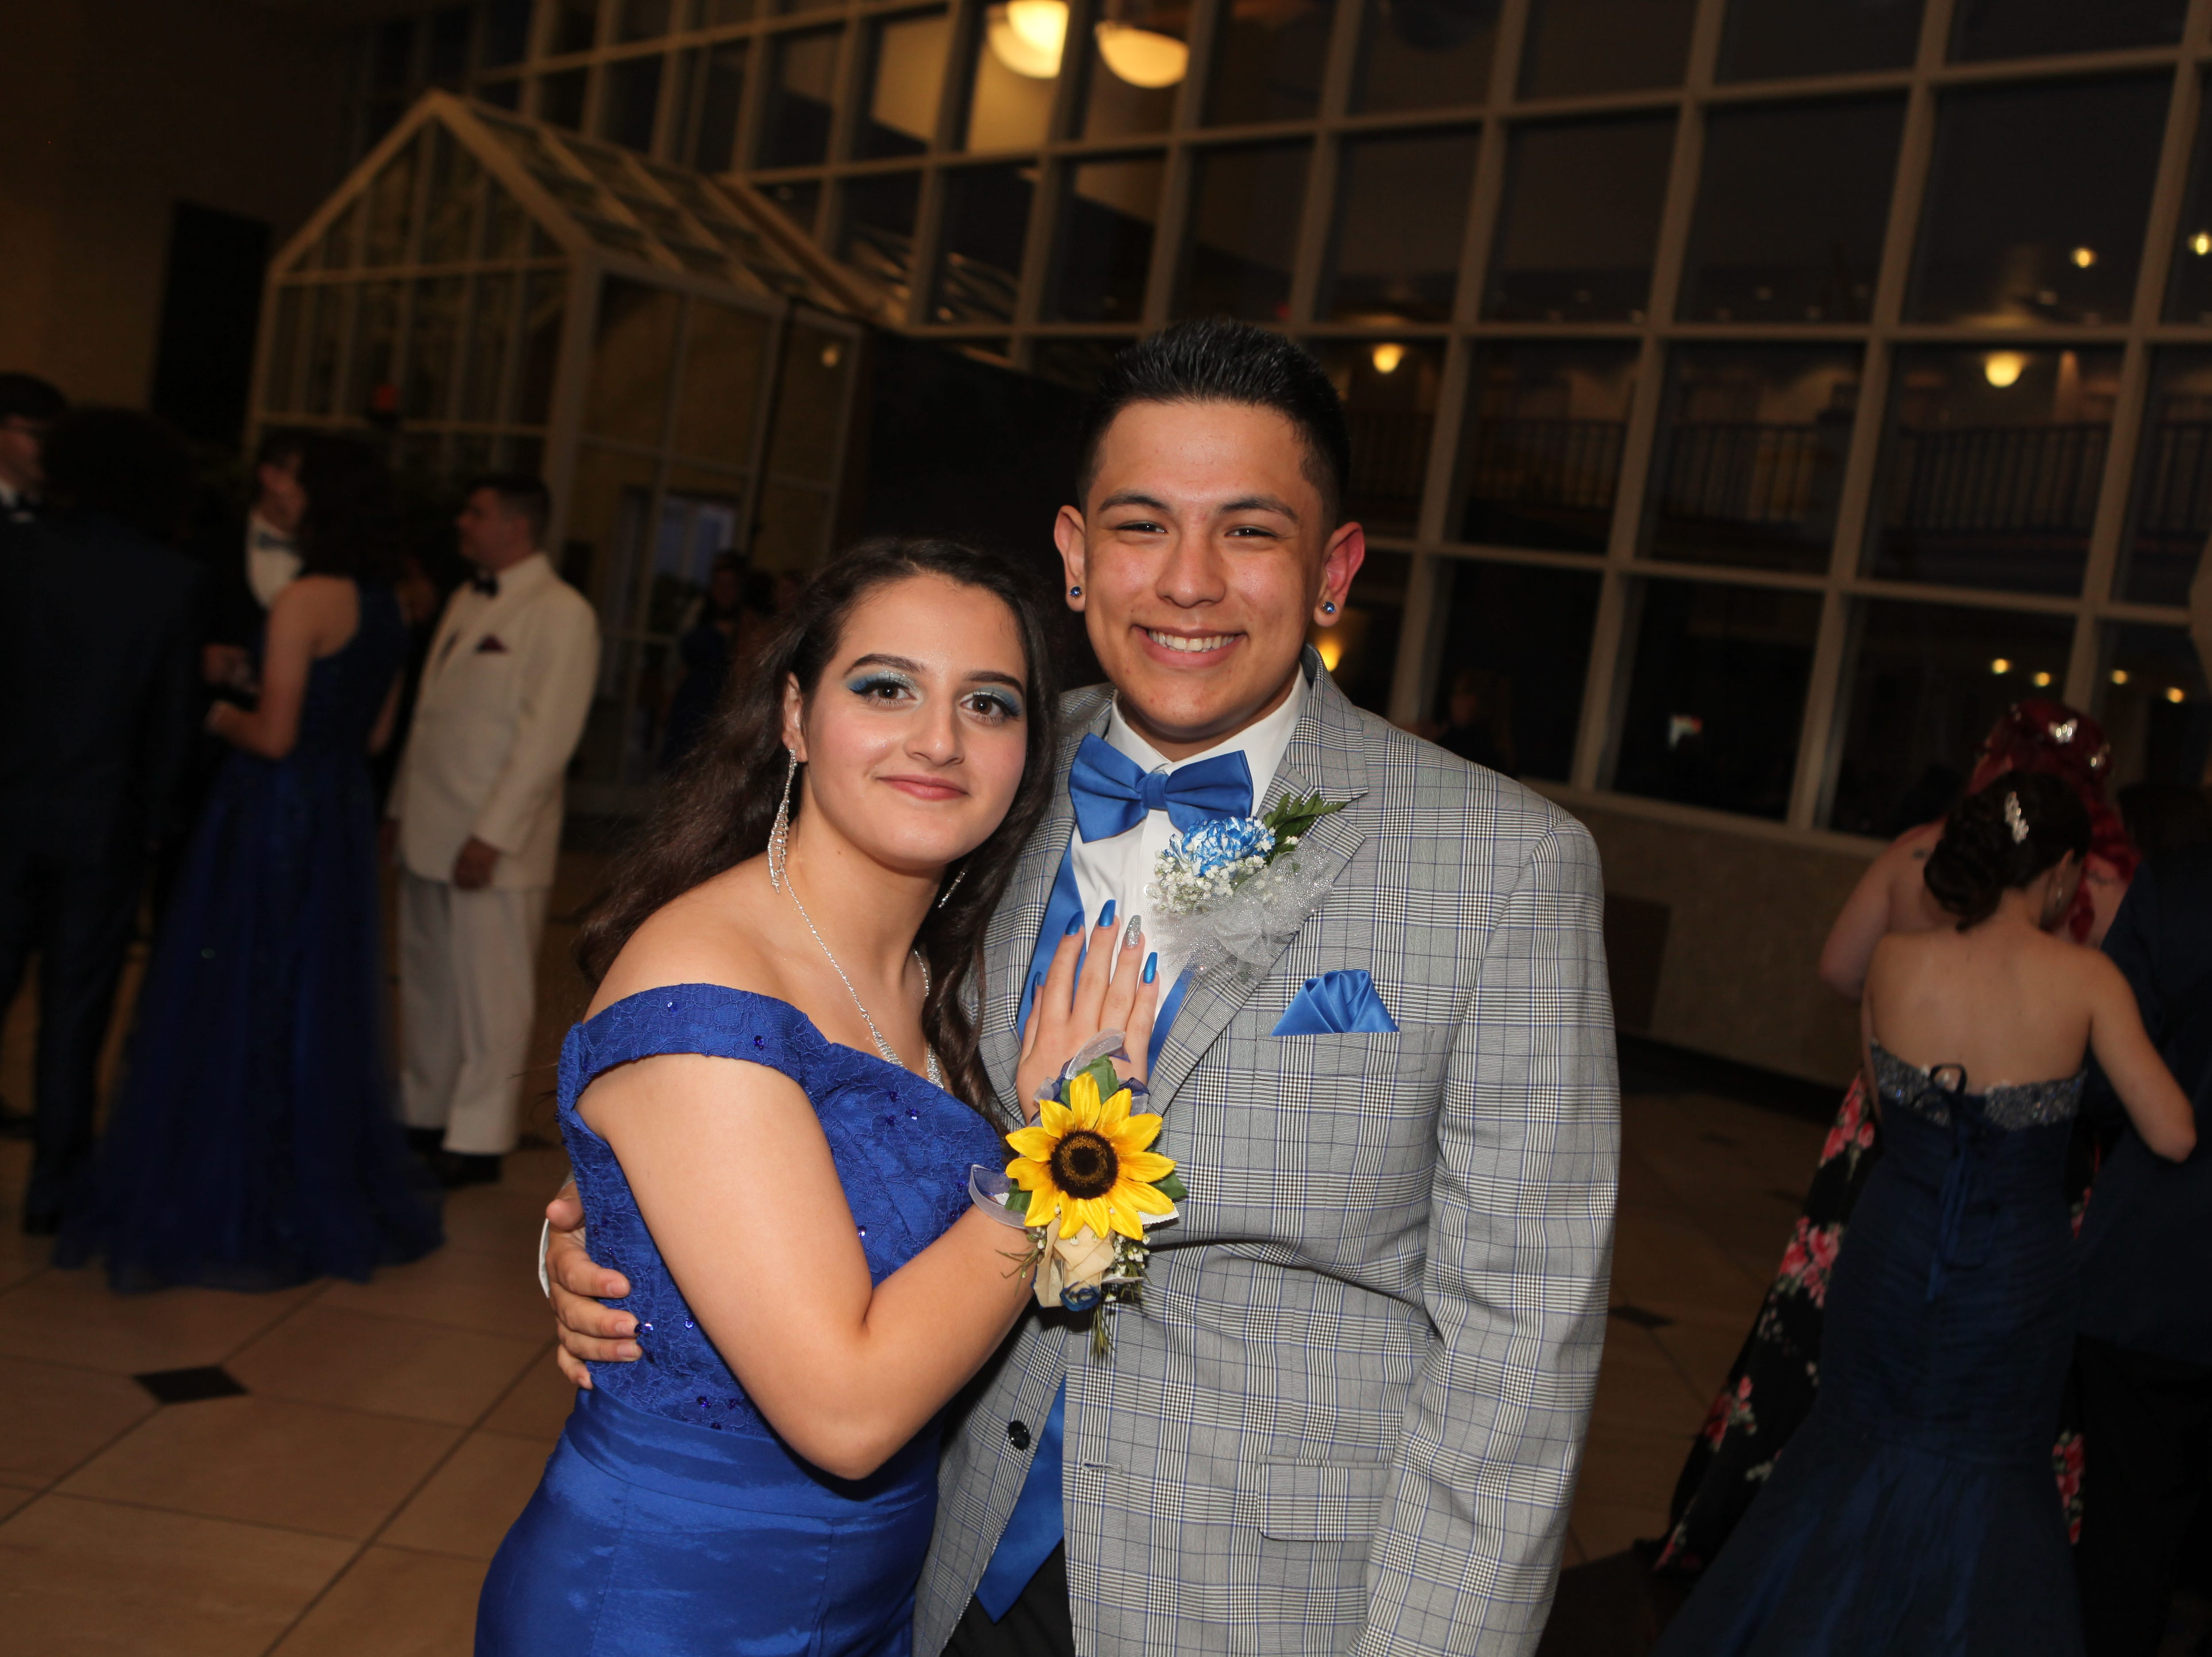 Danya Rabahat and Tommy Avila at West Creek High School's 2019 prom 2019, Saturday, May 4.